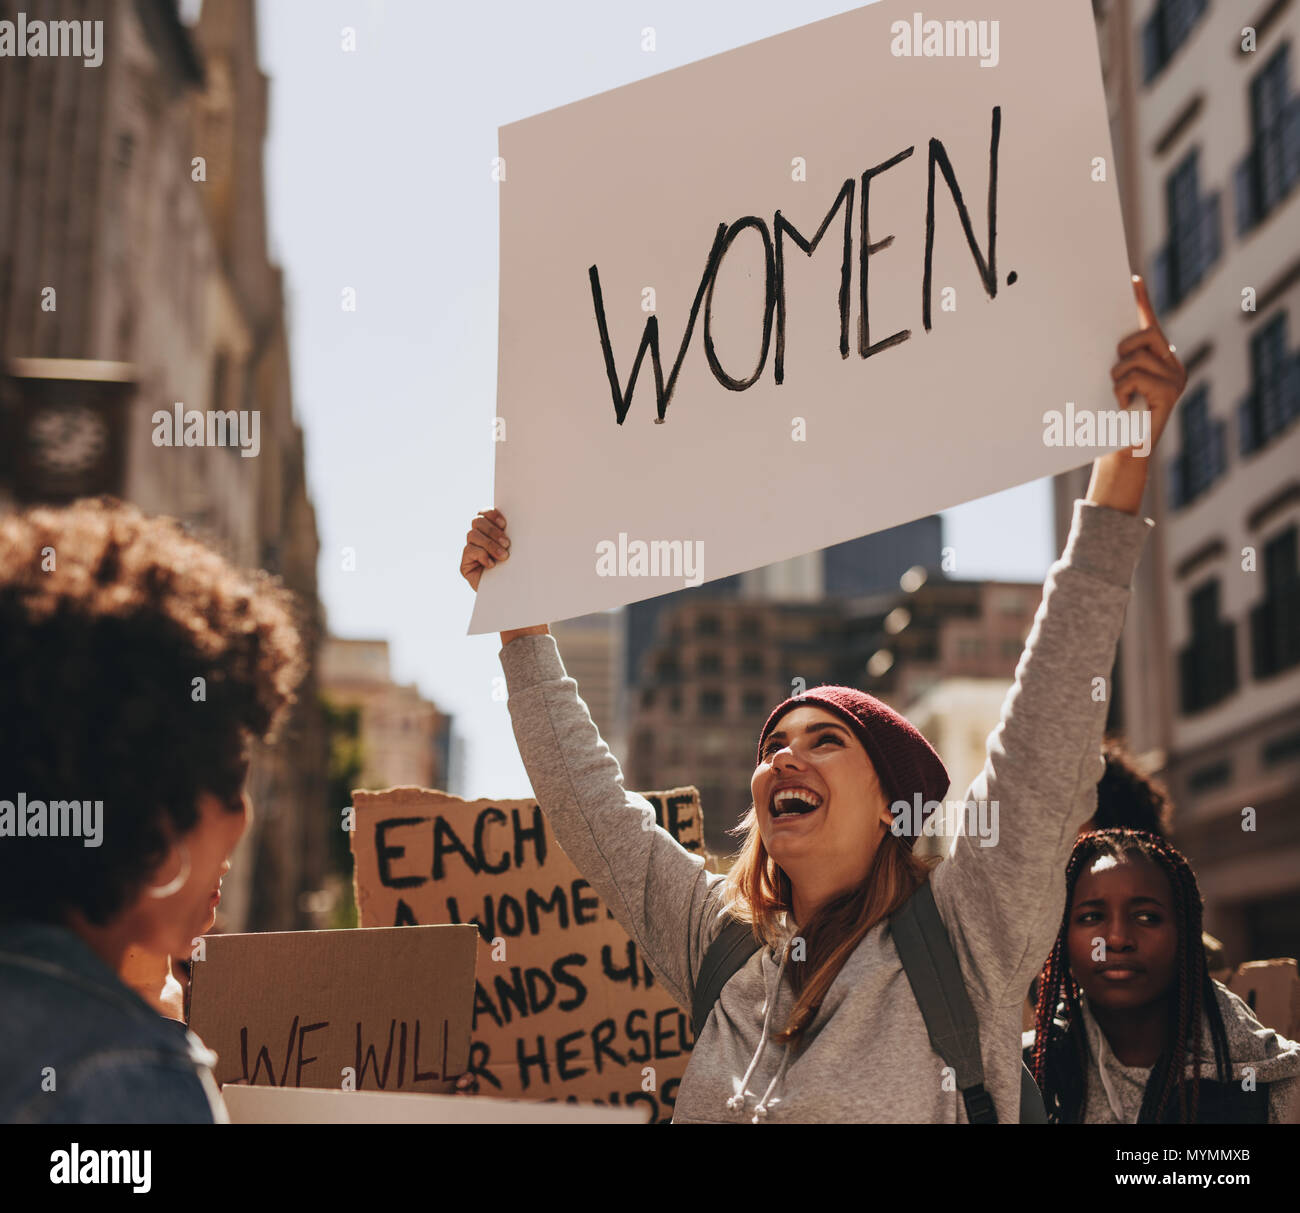 Happy young woman hand written protest sign at women's march. Group of females demonstrating outdoors. - Stock Image